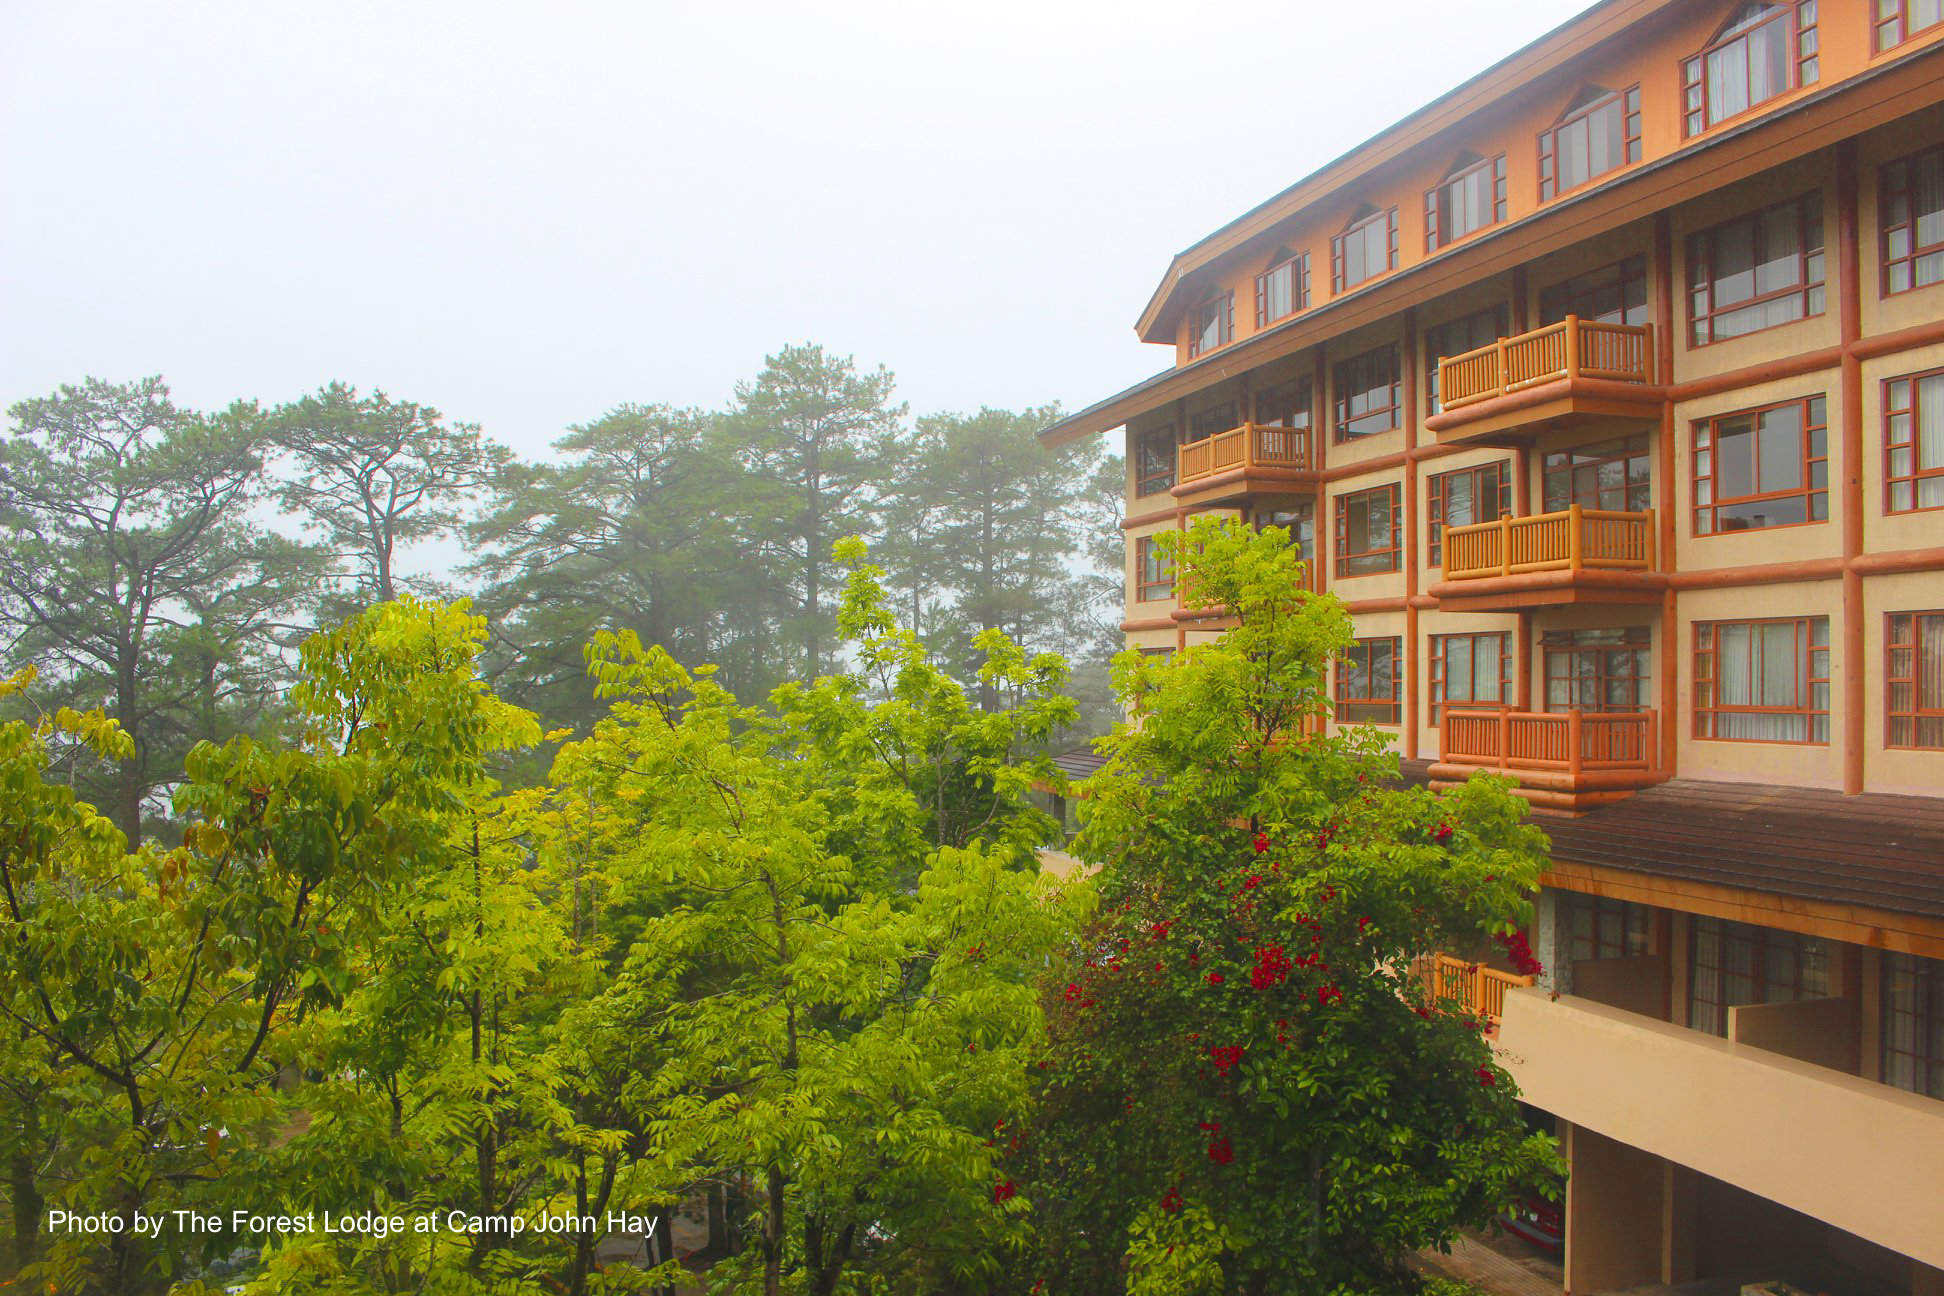 Foggy day at Baguio City